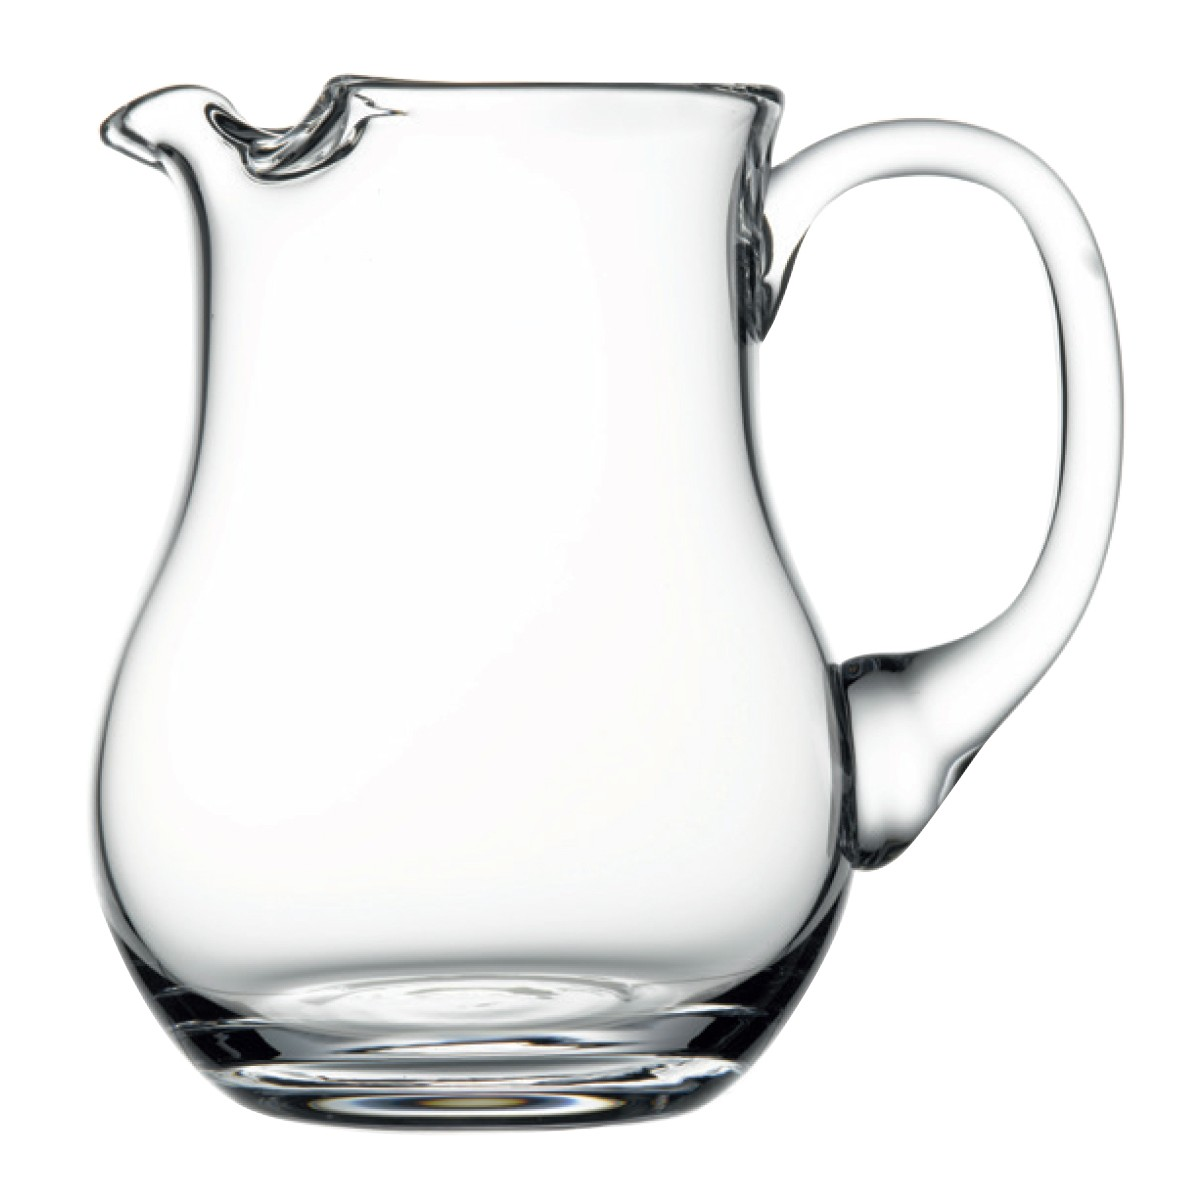 Made To Order 7.5H X 5.25T 33.25 oz Decanter Rounded/Case of 6